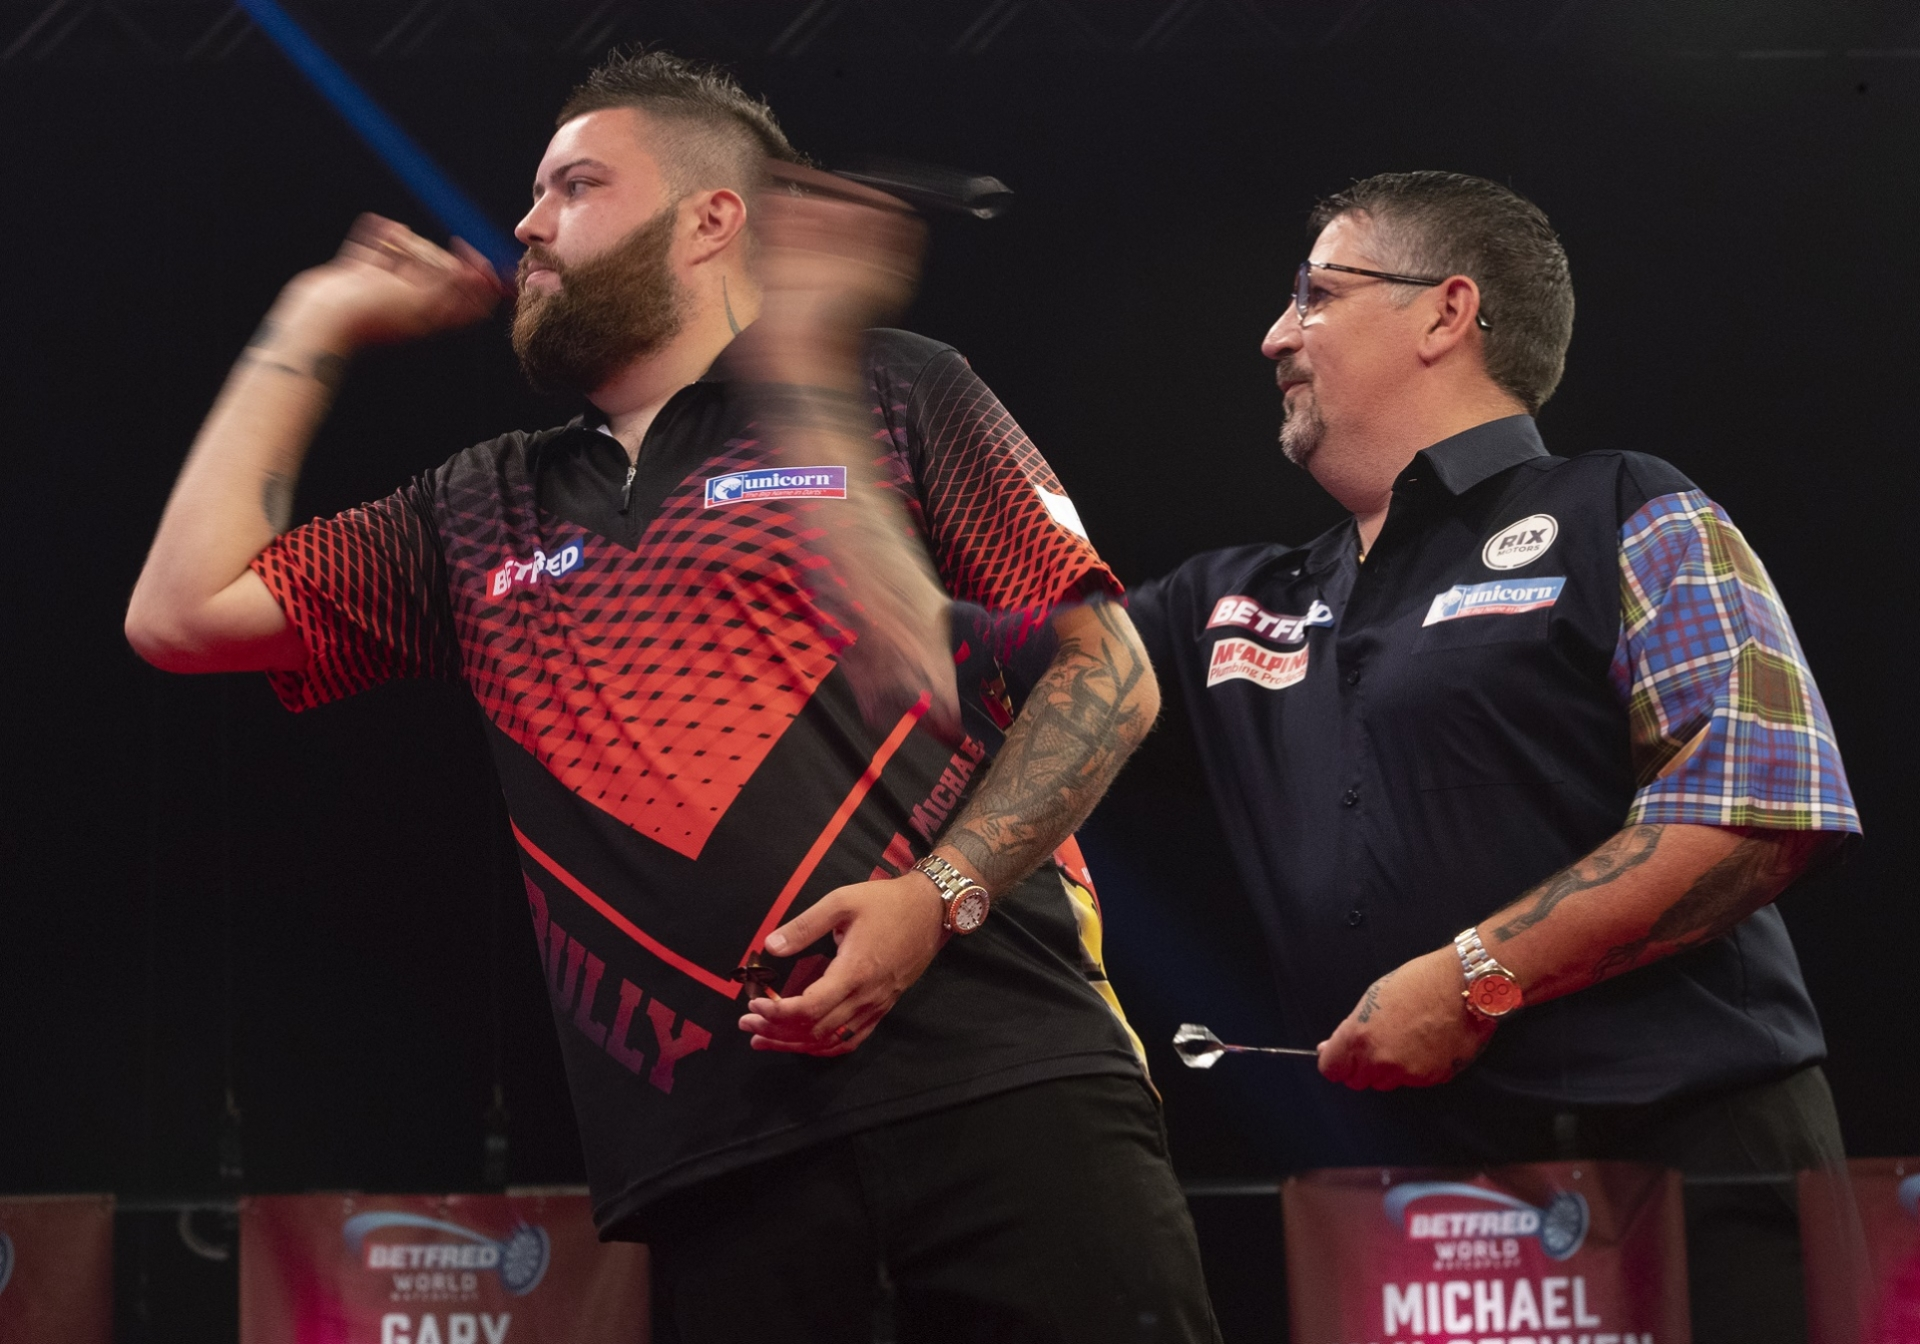 Michael Smith & Gary Anderson